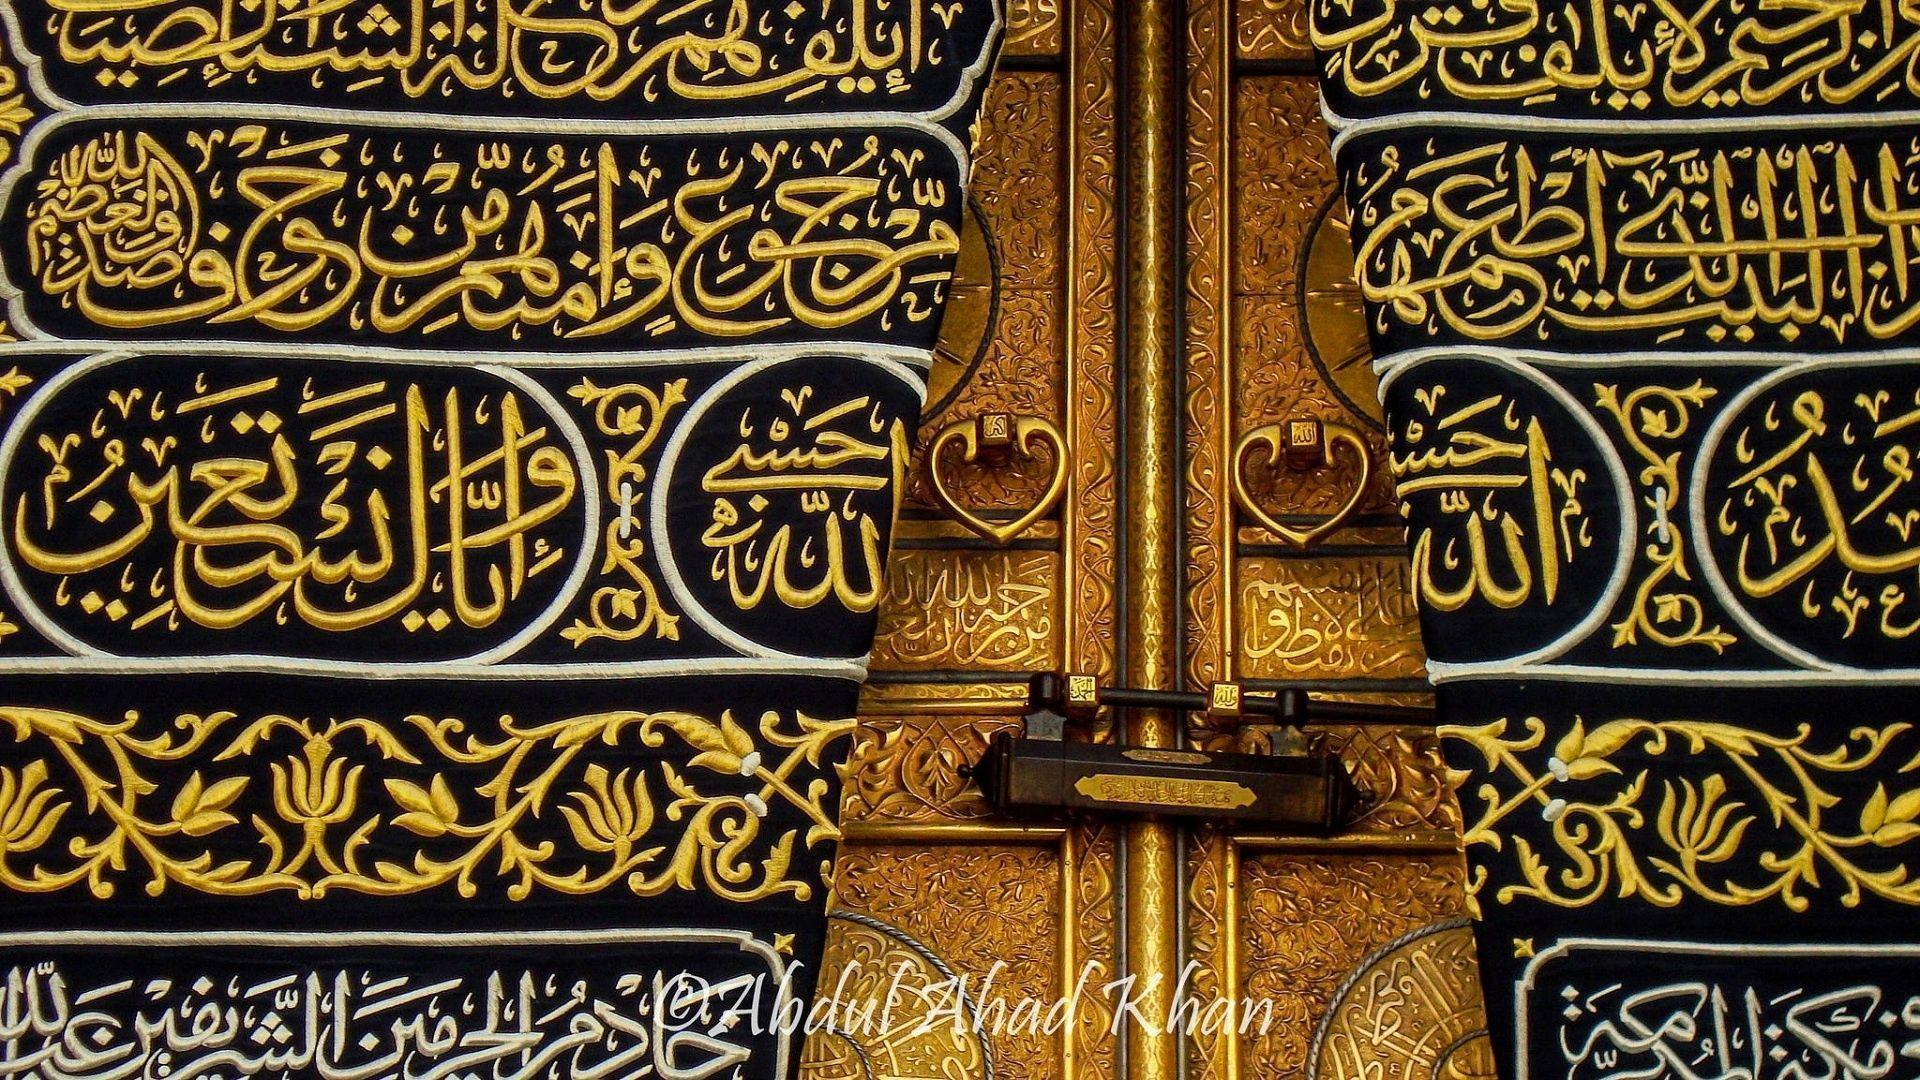 Kaaba Wallpapers - Wallpaper Cave